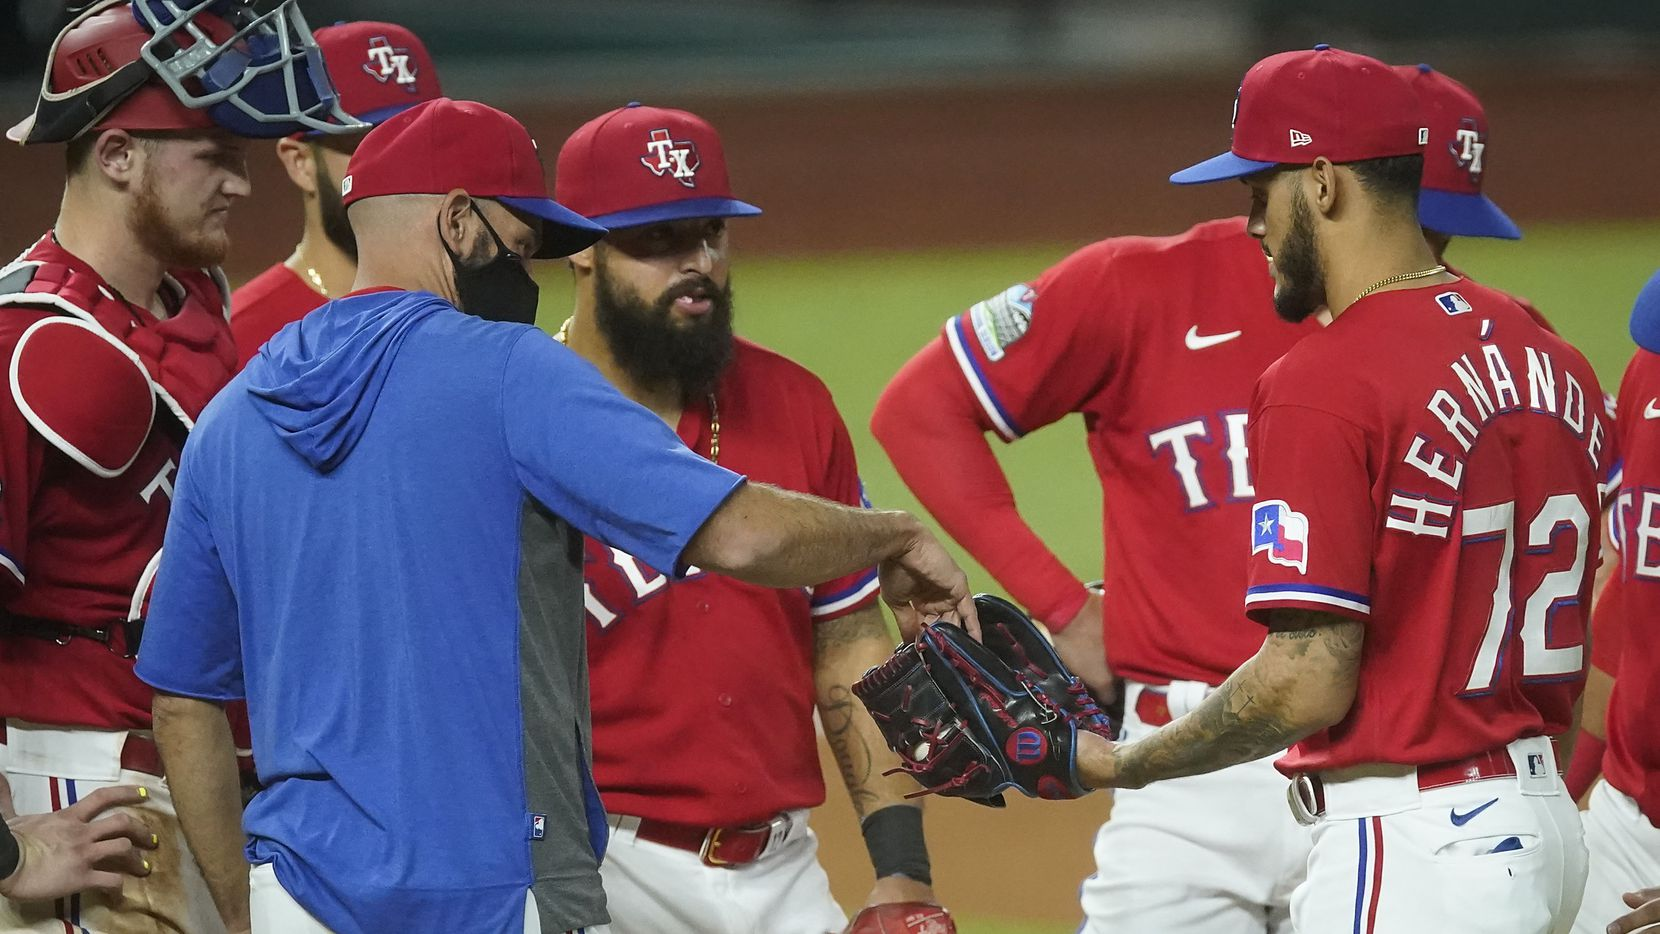 Texas Rangers manager Chris Woodward hands the ball over to pitcher Jonathan Hernandez after brining him in to pitch during the seventh inning against the Houston Astros at Globe Life Field on Friday, Sept. 25, 2020. (Smiley N. Pool/The Dallas Morning News)